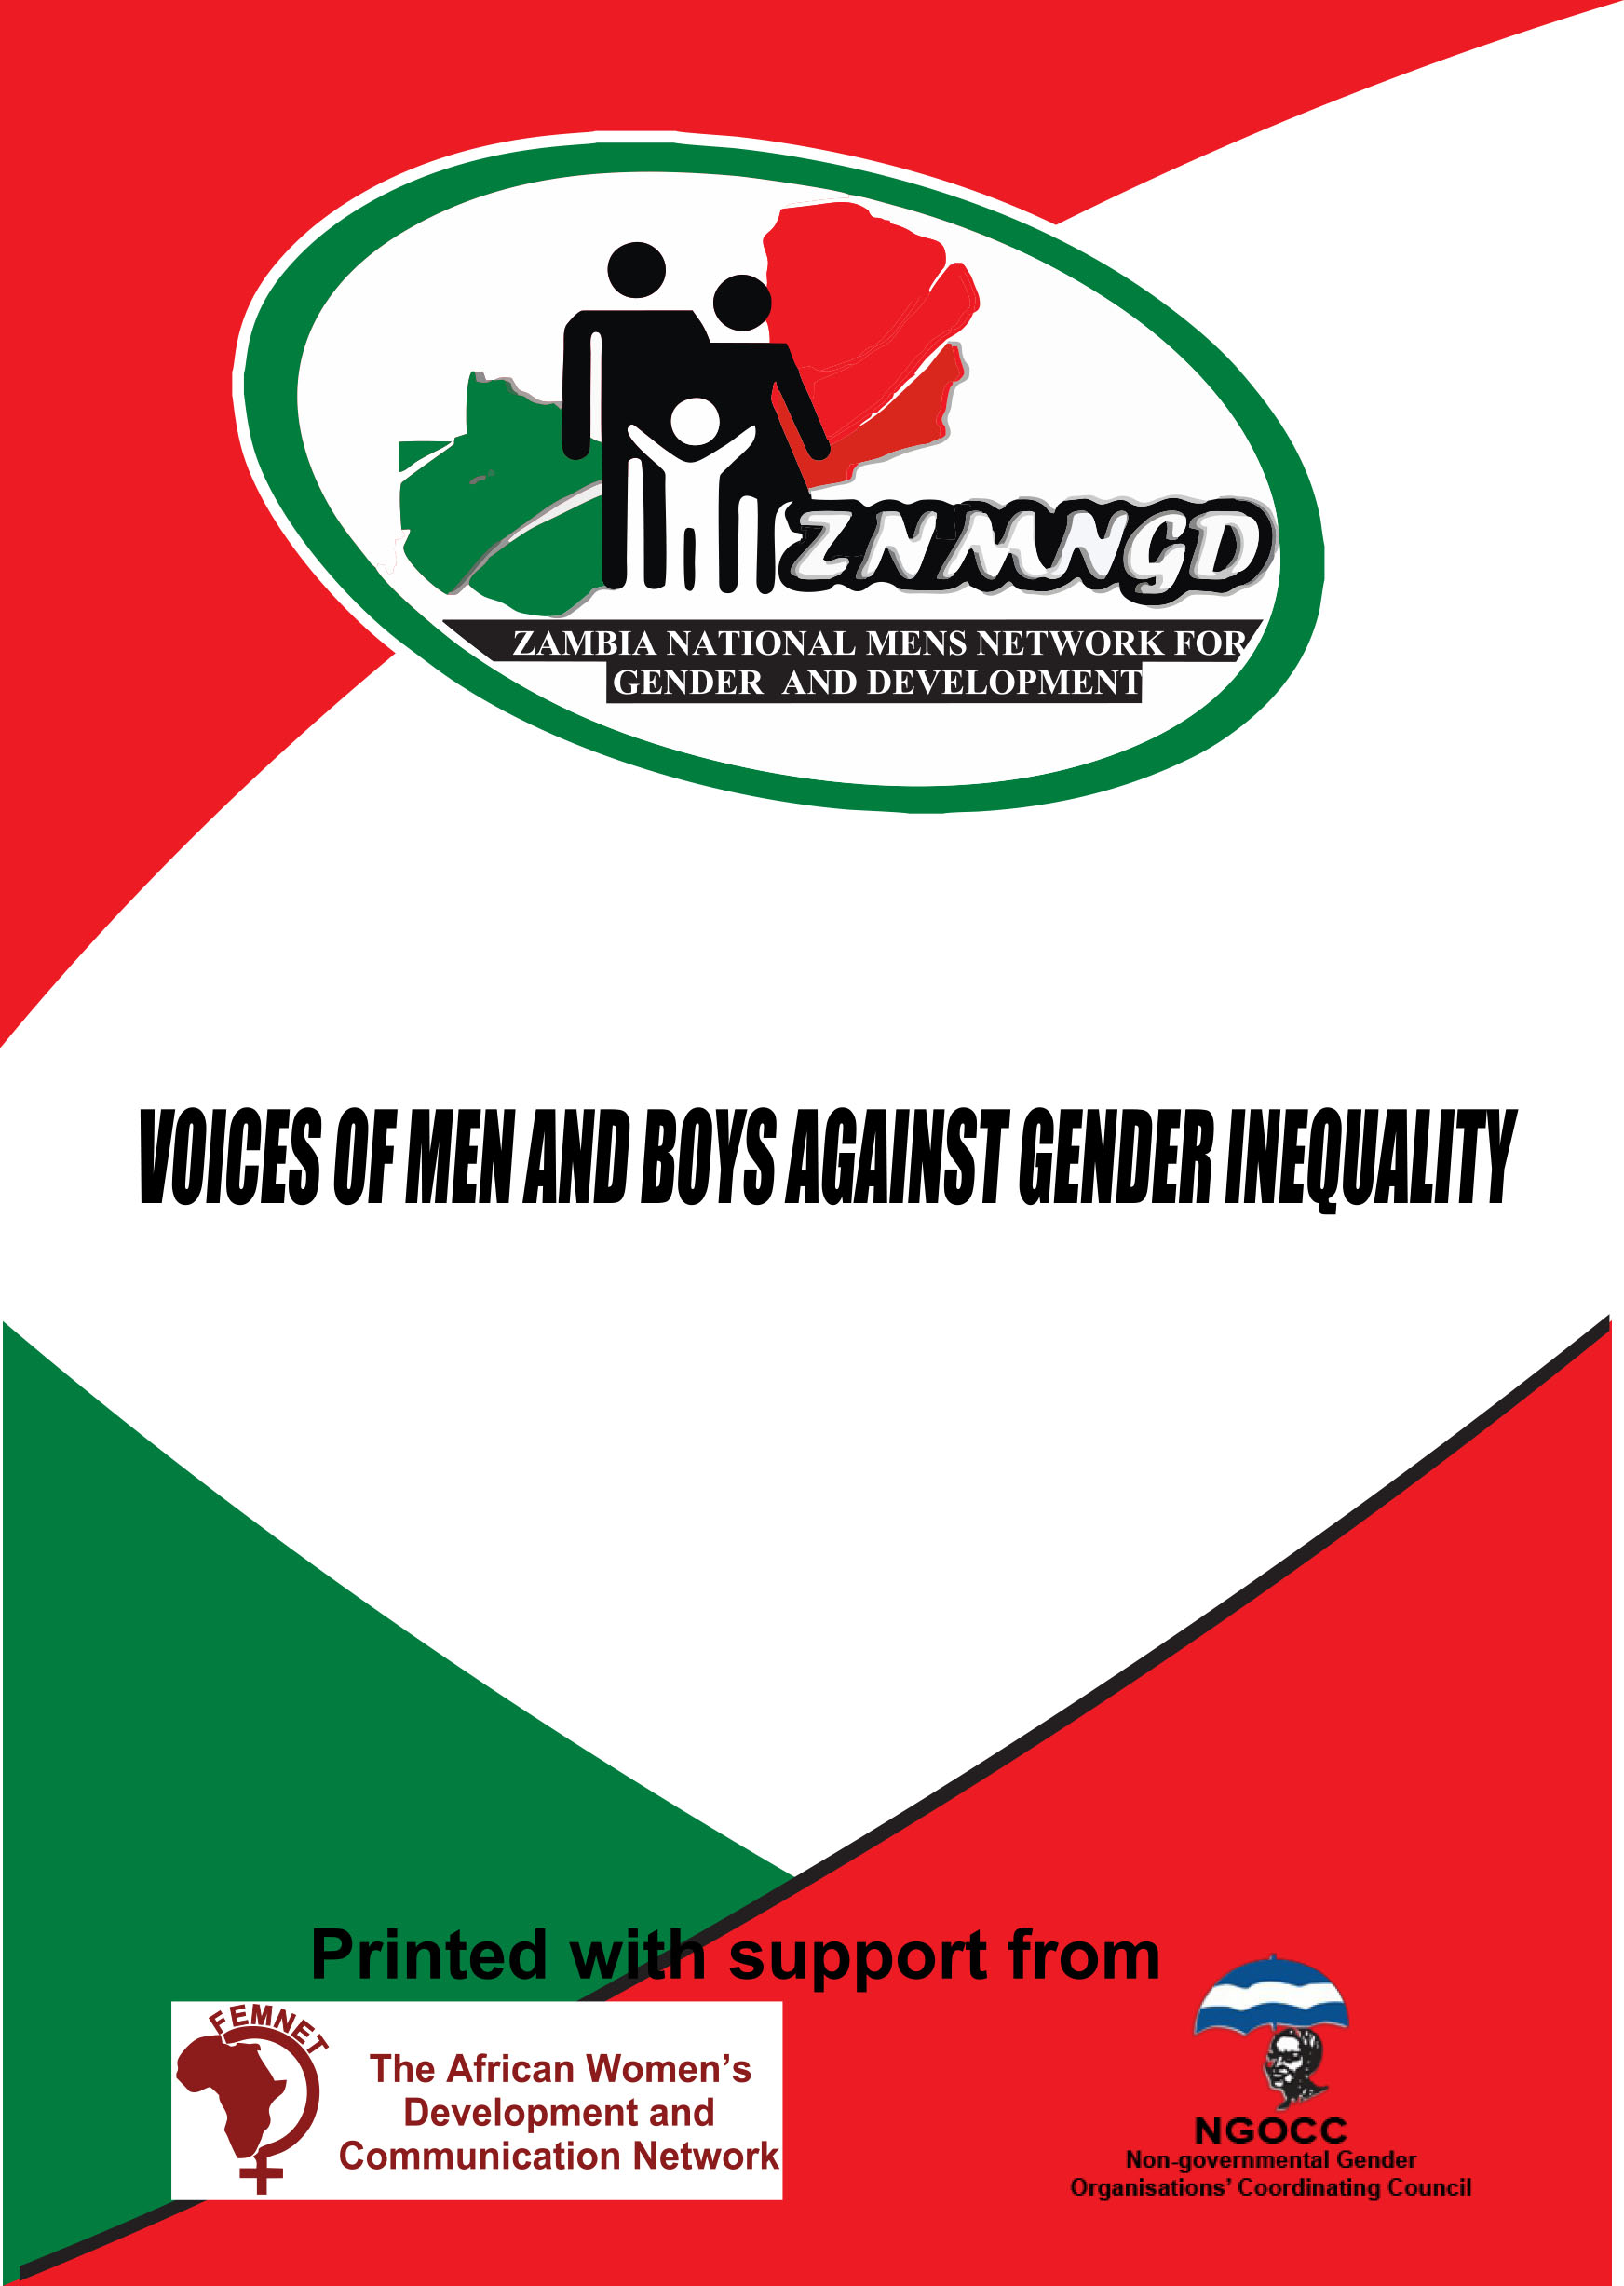 Voices of Men and Boys against Gender Inequality